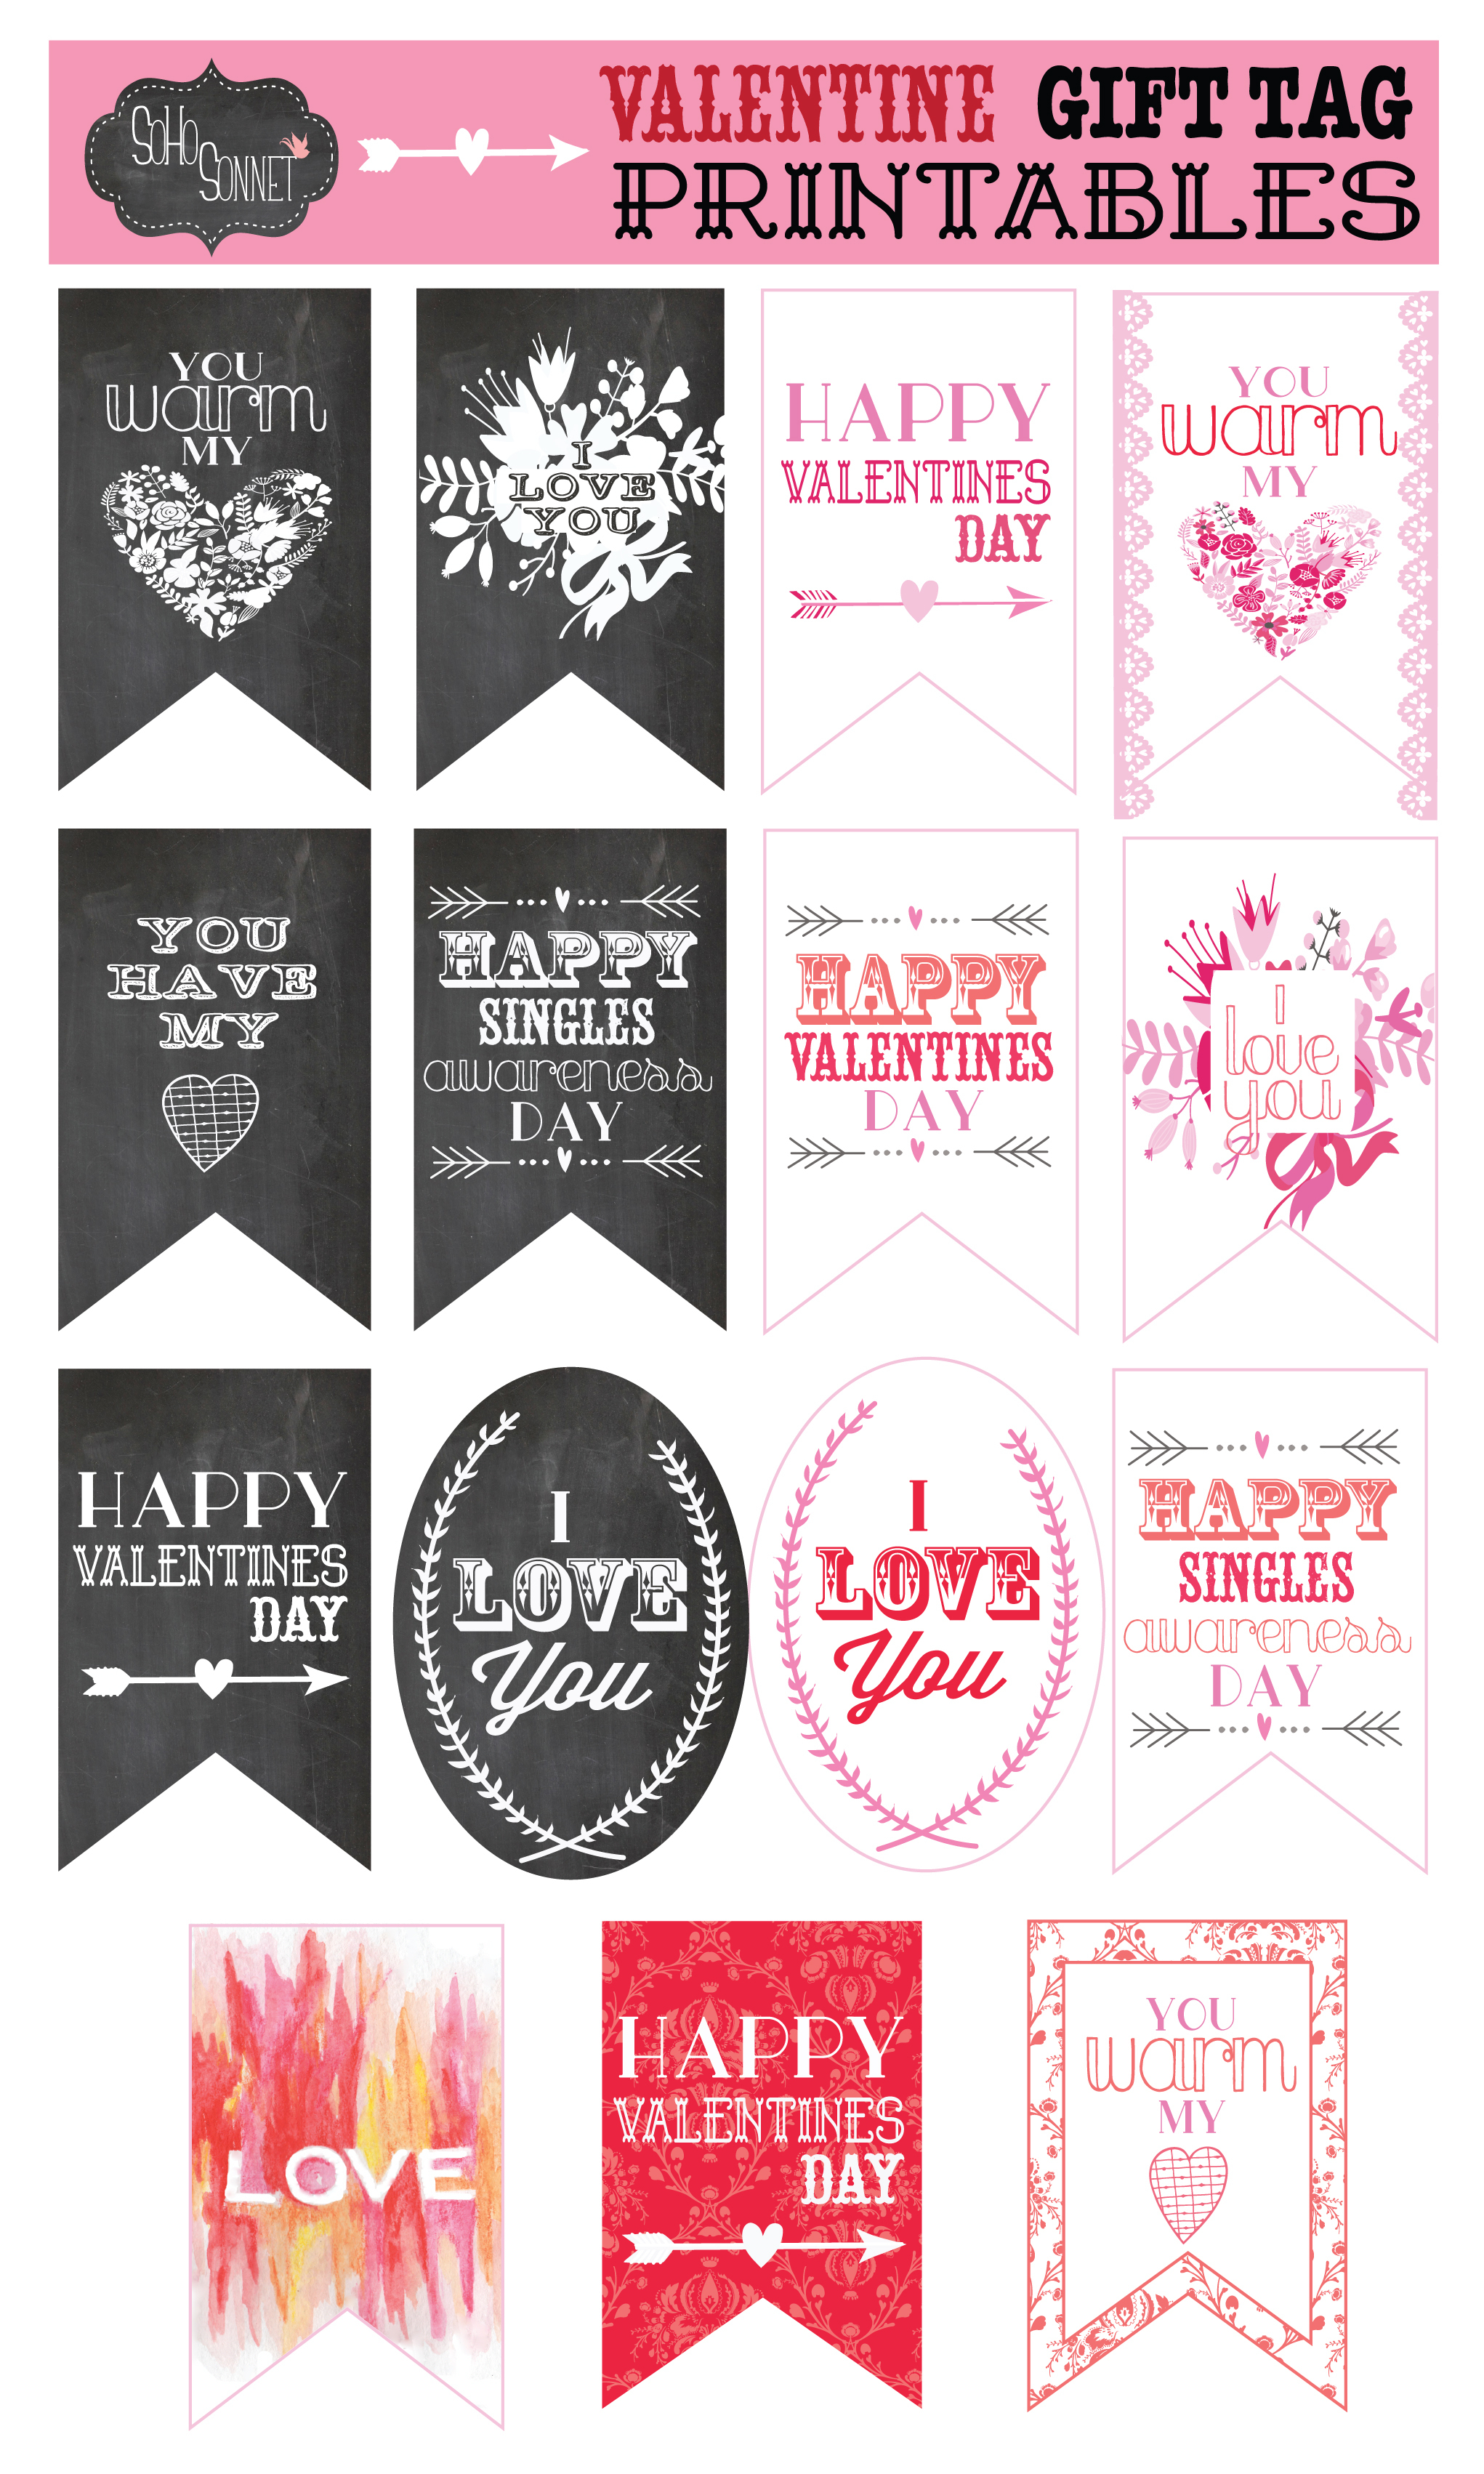 Free Valentine Gift Tag Printables - Sohosonnet Creative Living - Free Printable Valentines Day Tags